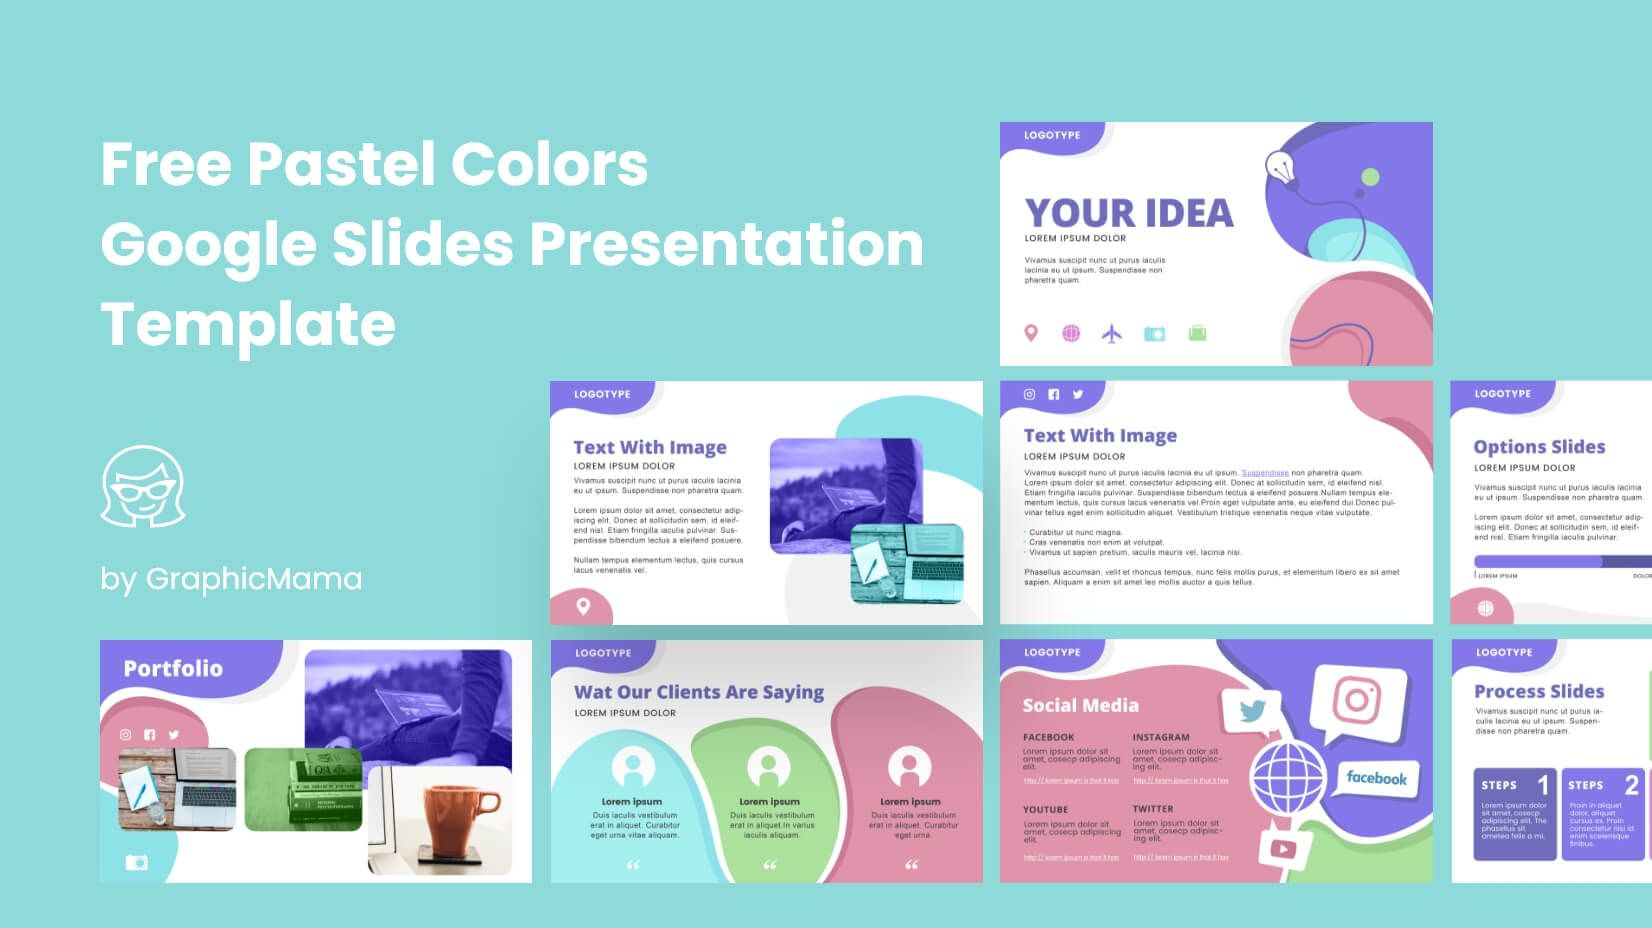 10 Free Google Slides Templates by GraphicMama (With